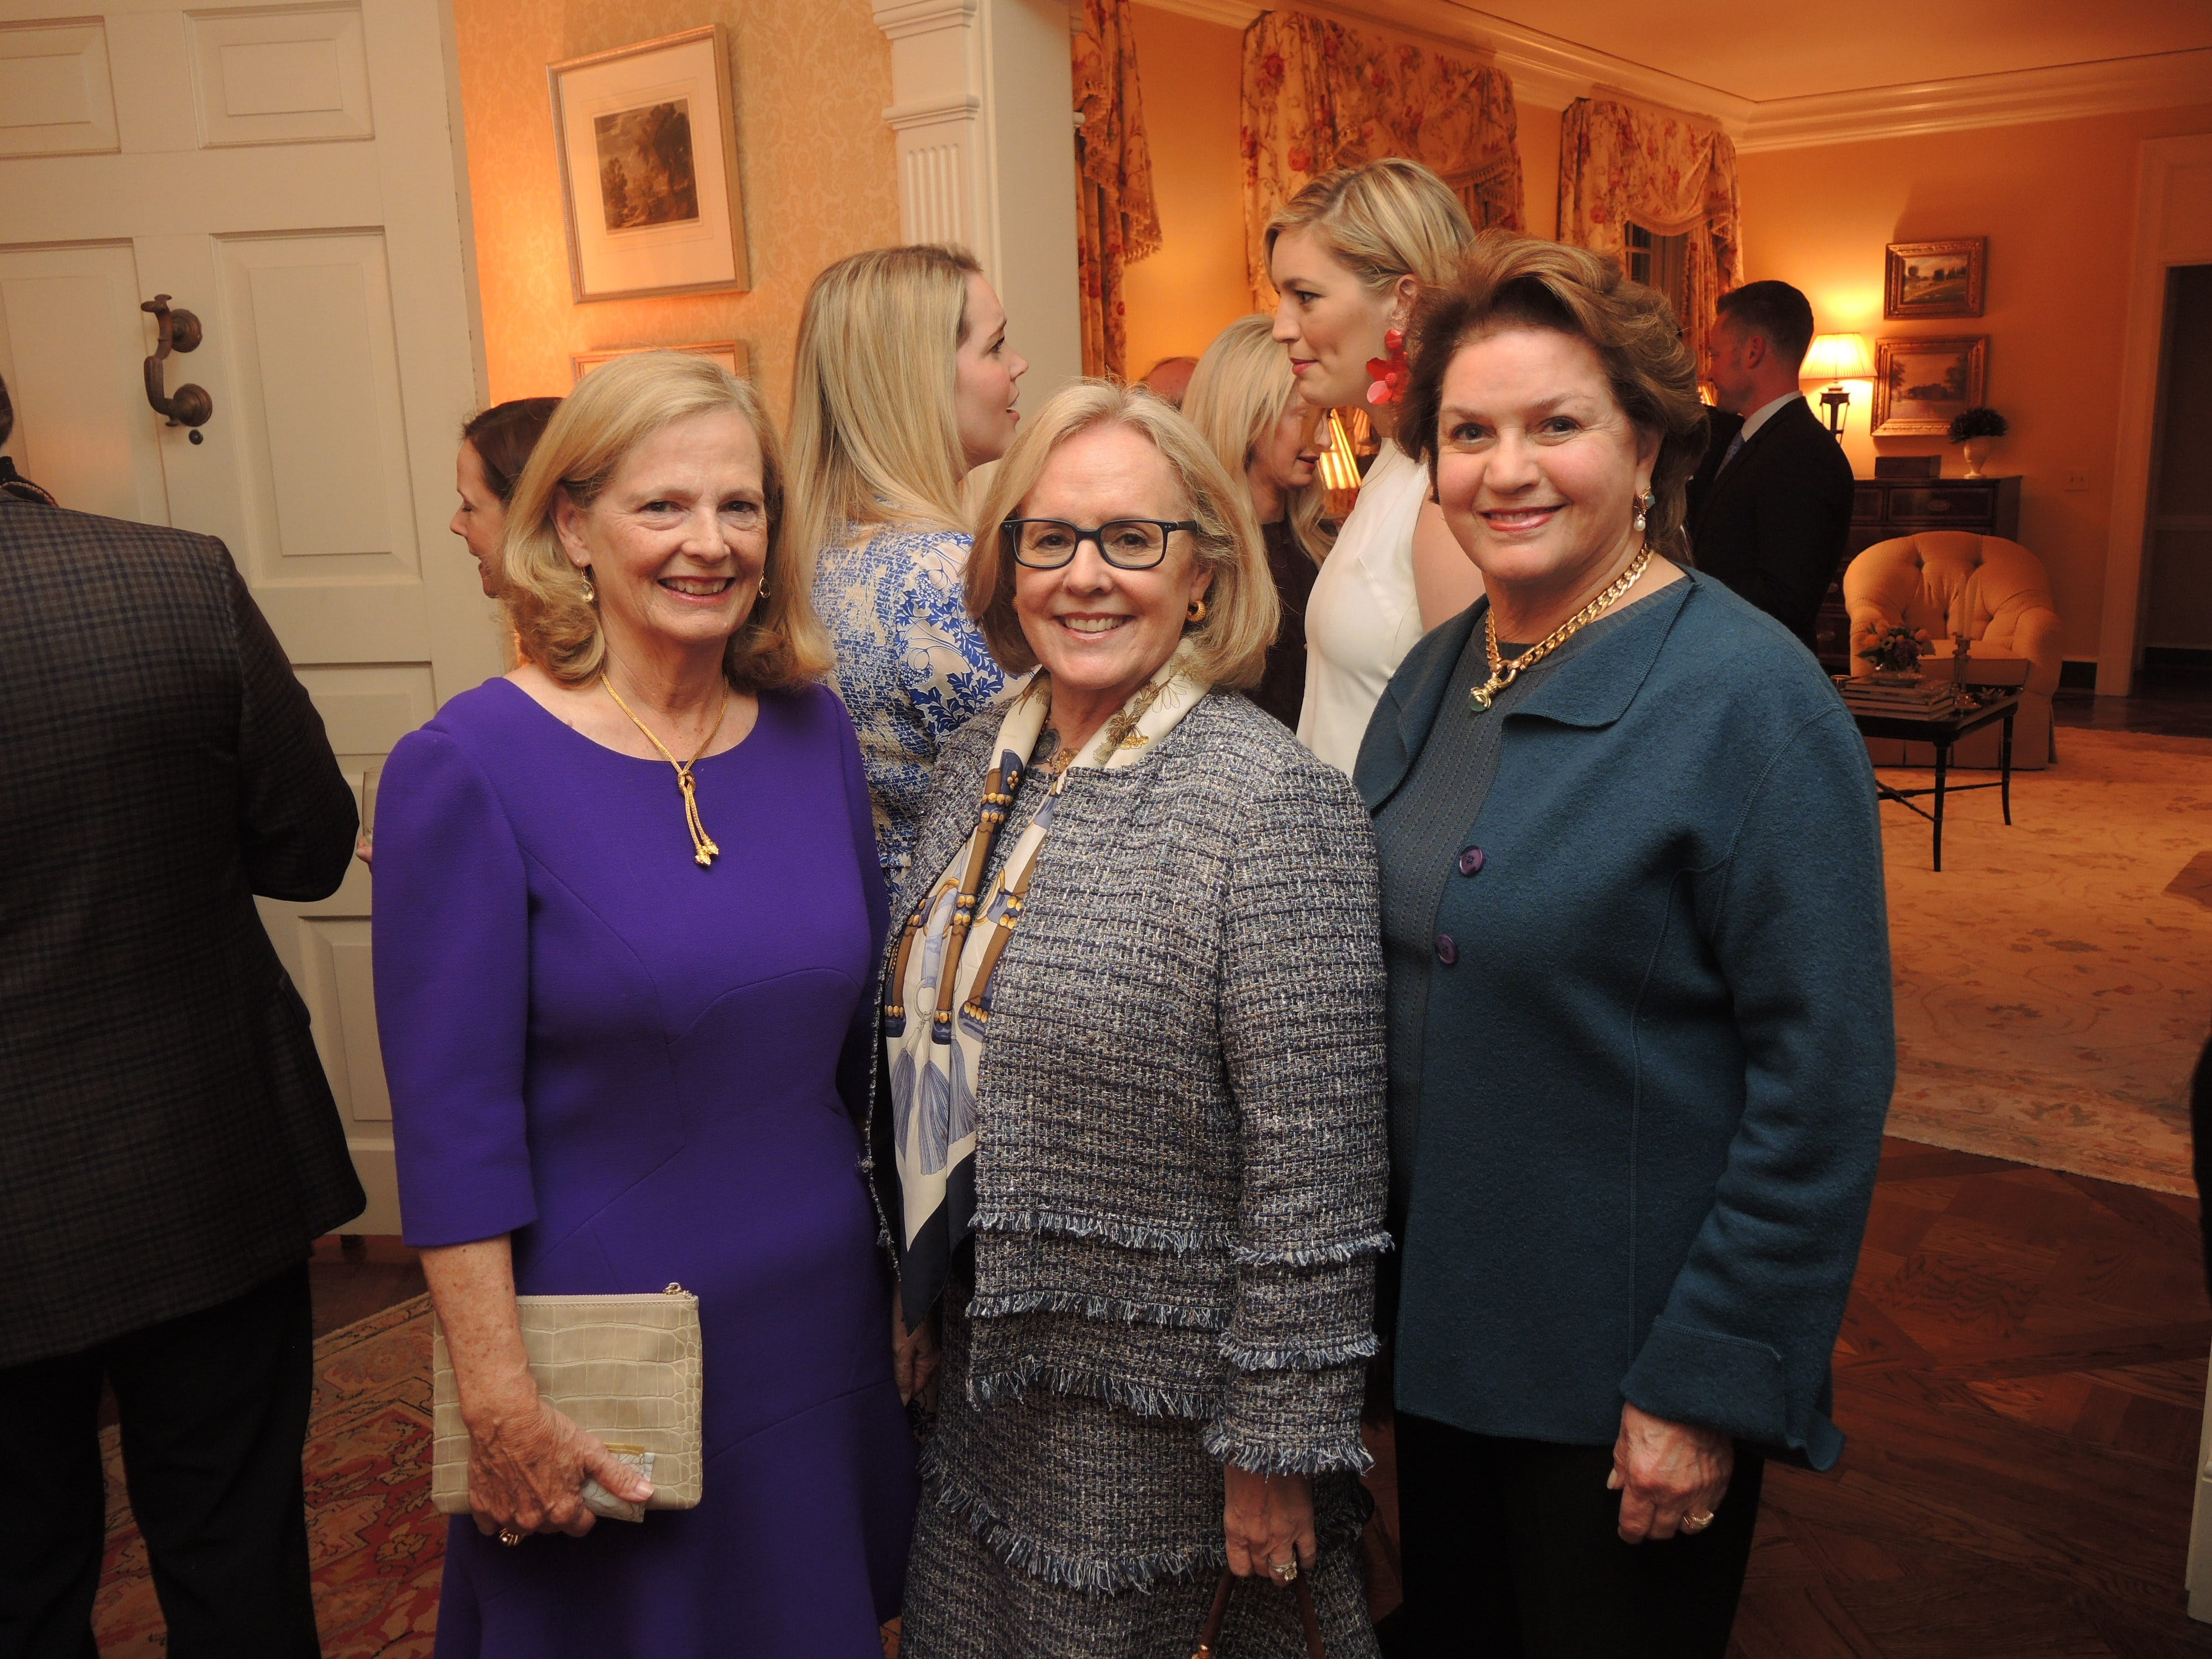 Jean Ann Banker, left, Emily Noel and Jane Coble at the Swan Ball 2019 Unveiling, held at the home of Kathy and Bobby Rolfe.